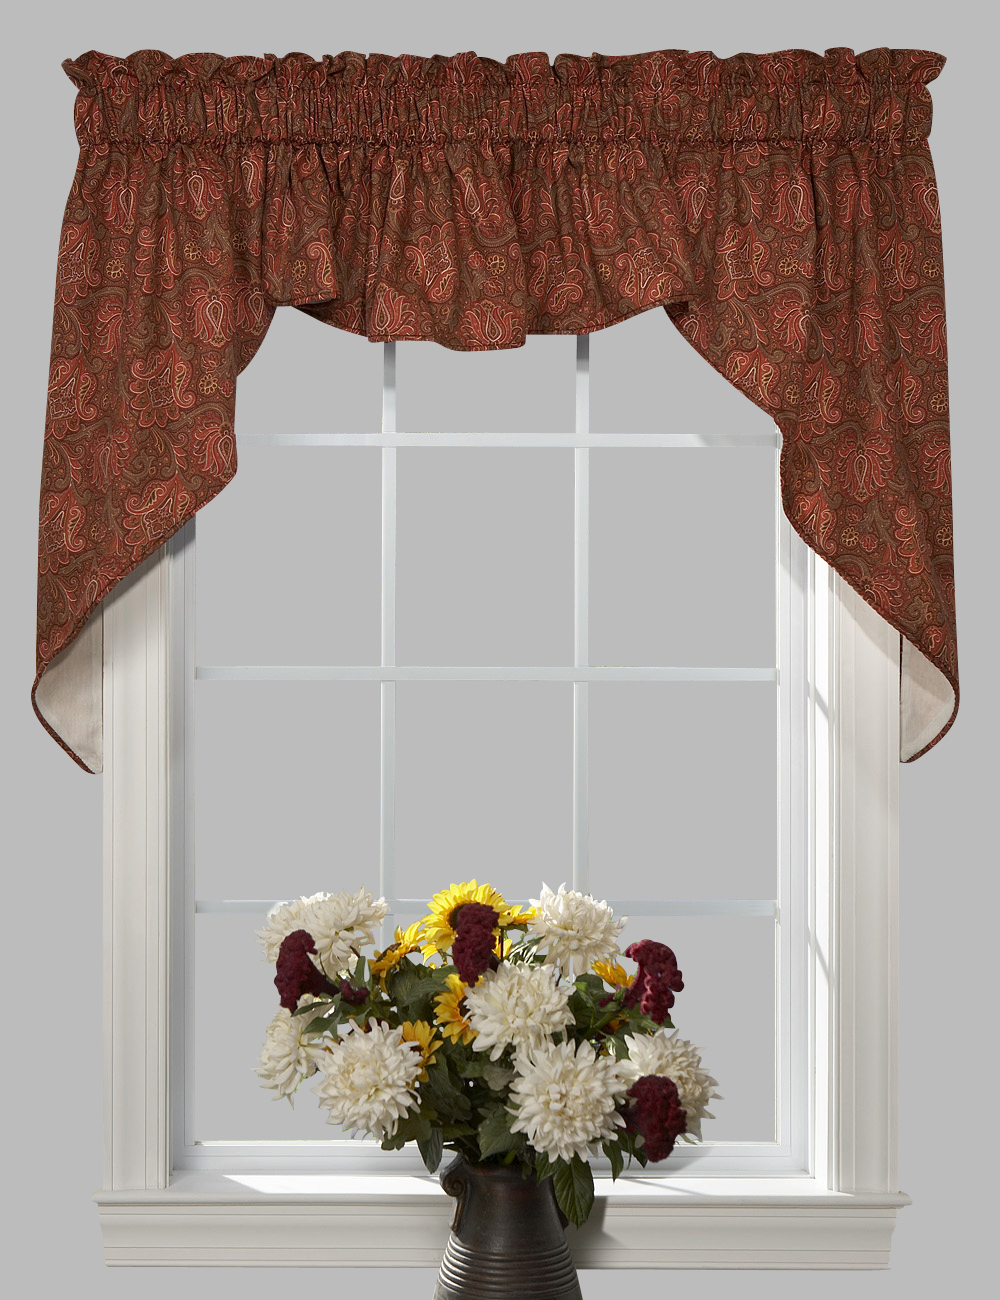 Beacon swag window valance 3 pc paisley lined - Boutique free valence ...